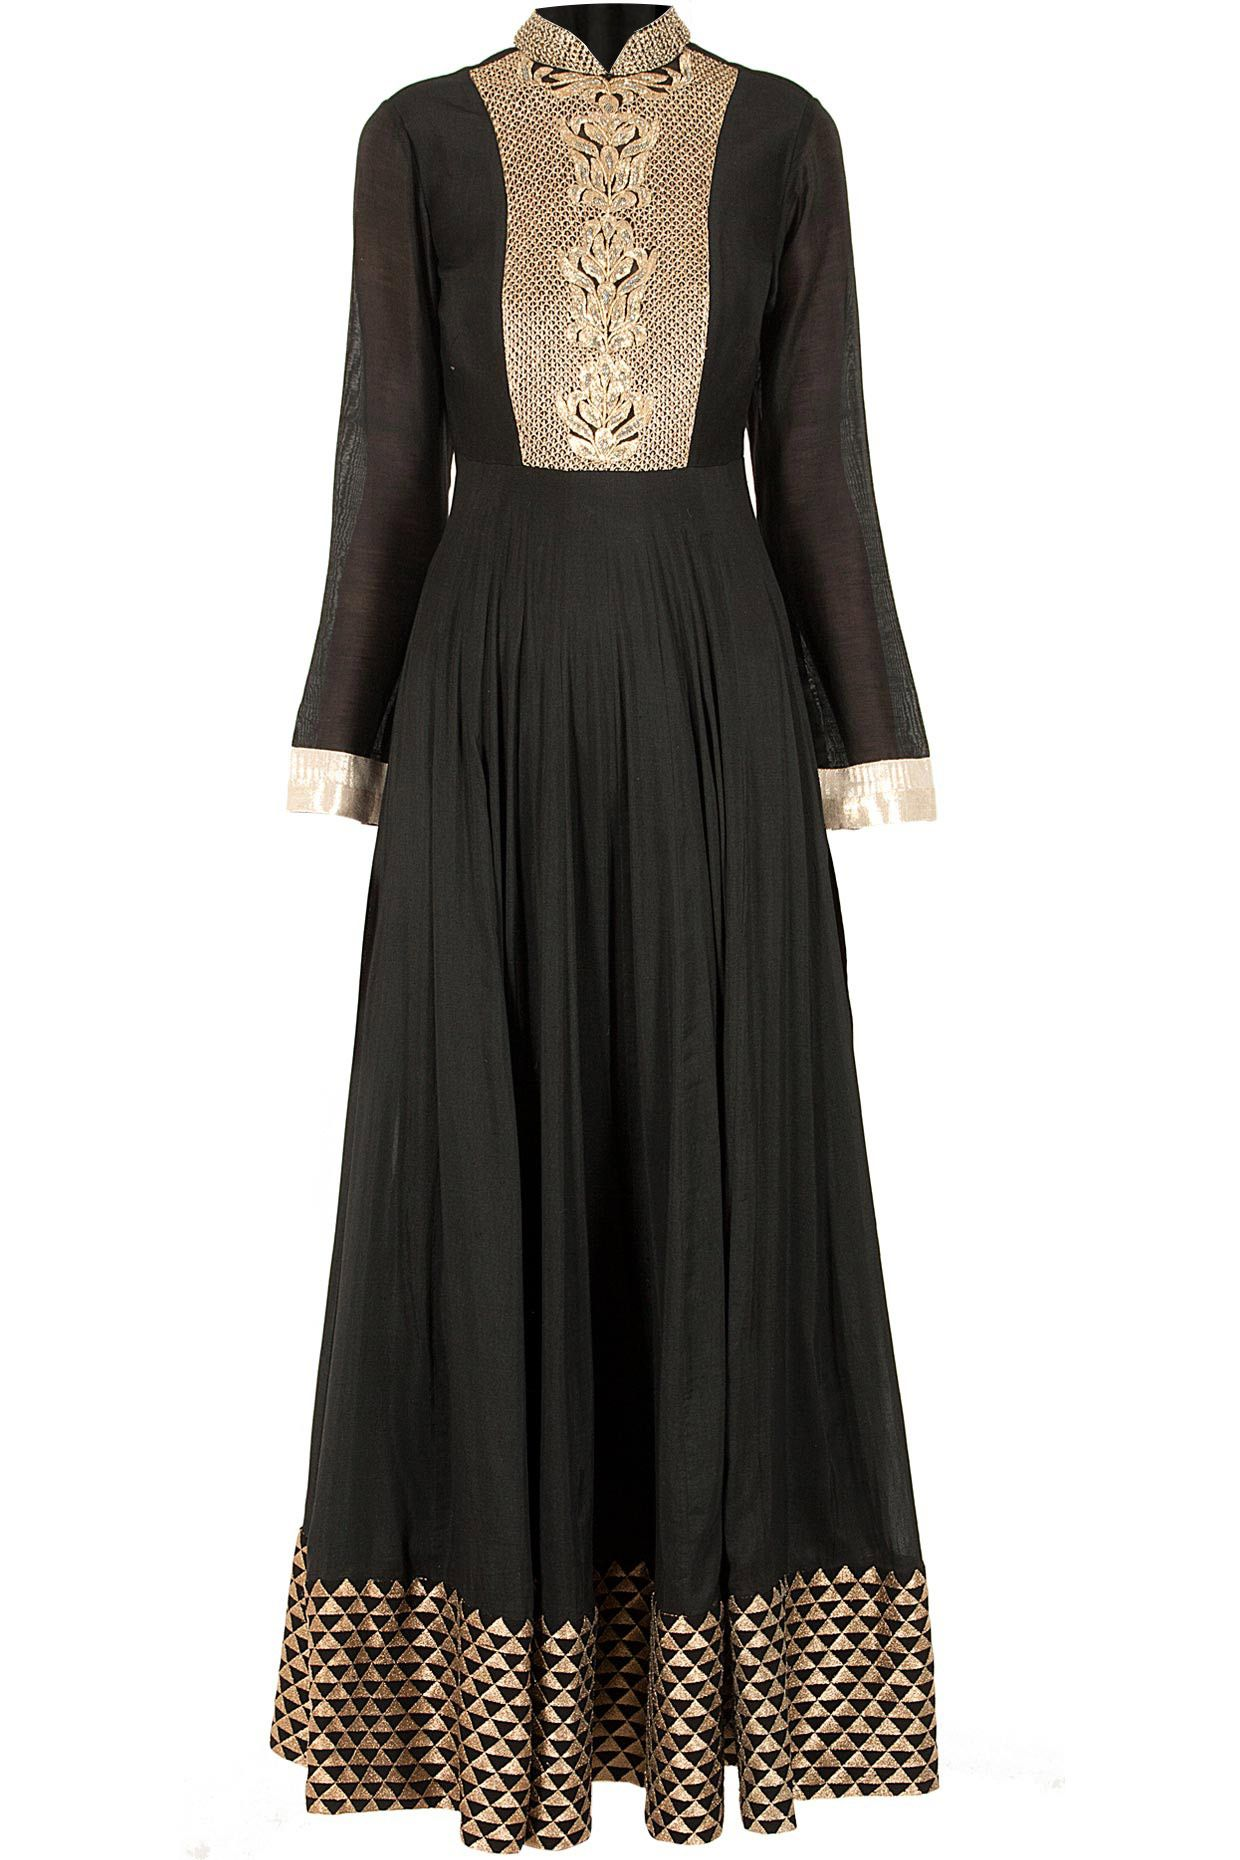 Black Embroidered Sanea Gown Available Only At Pernias Pop Up Shop Gamis